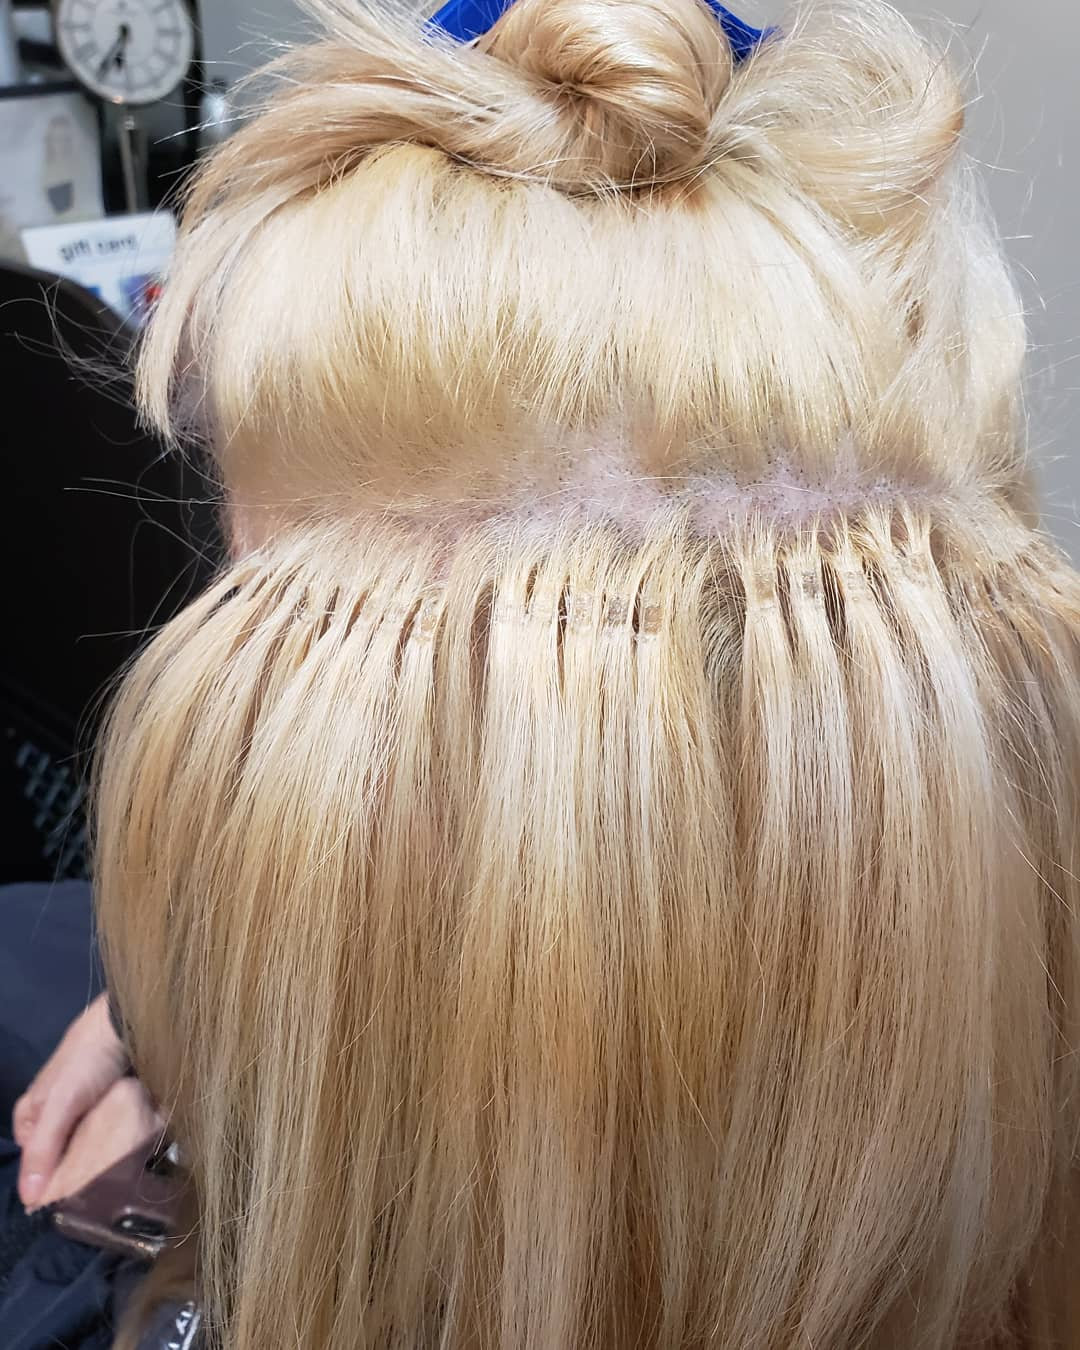 Hairdreams extensions